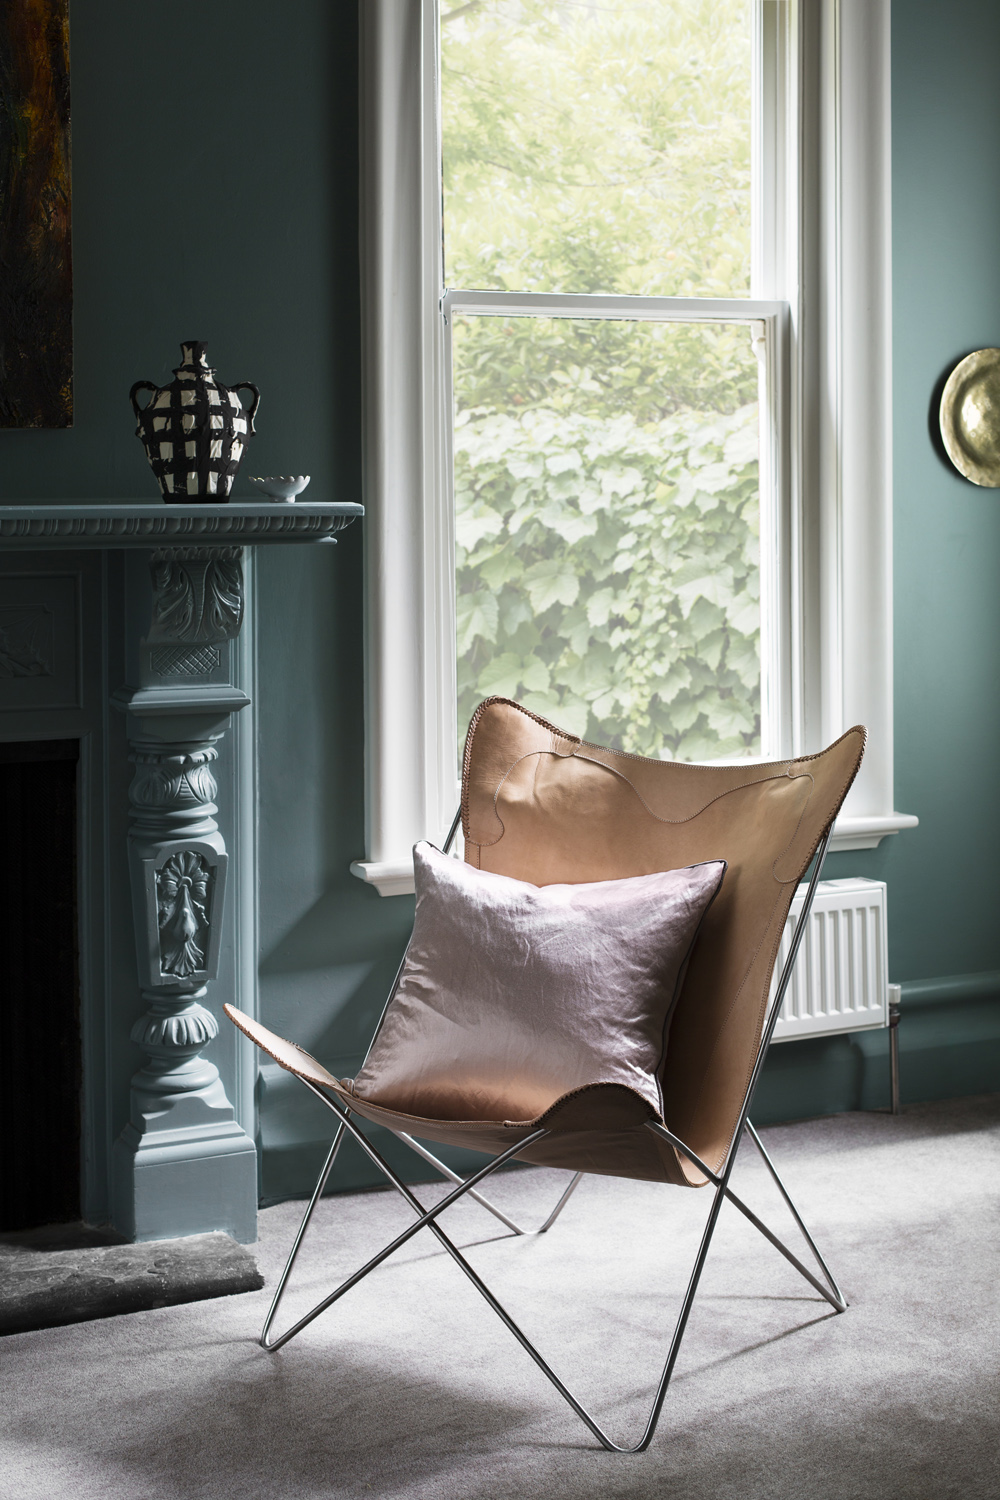 Cushion from  Le Marc  and Butterfly chair from  Barnaby Lane . Photography  Martina Gemmola .